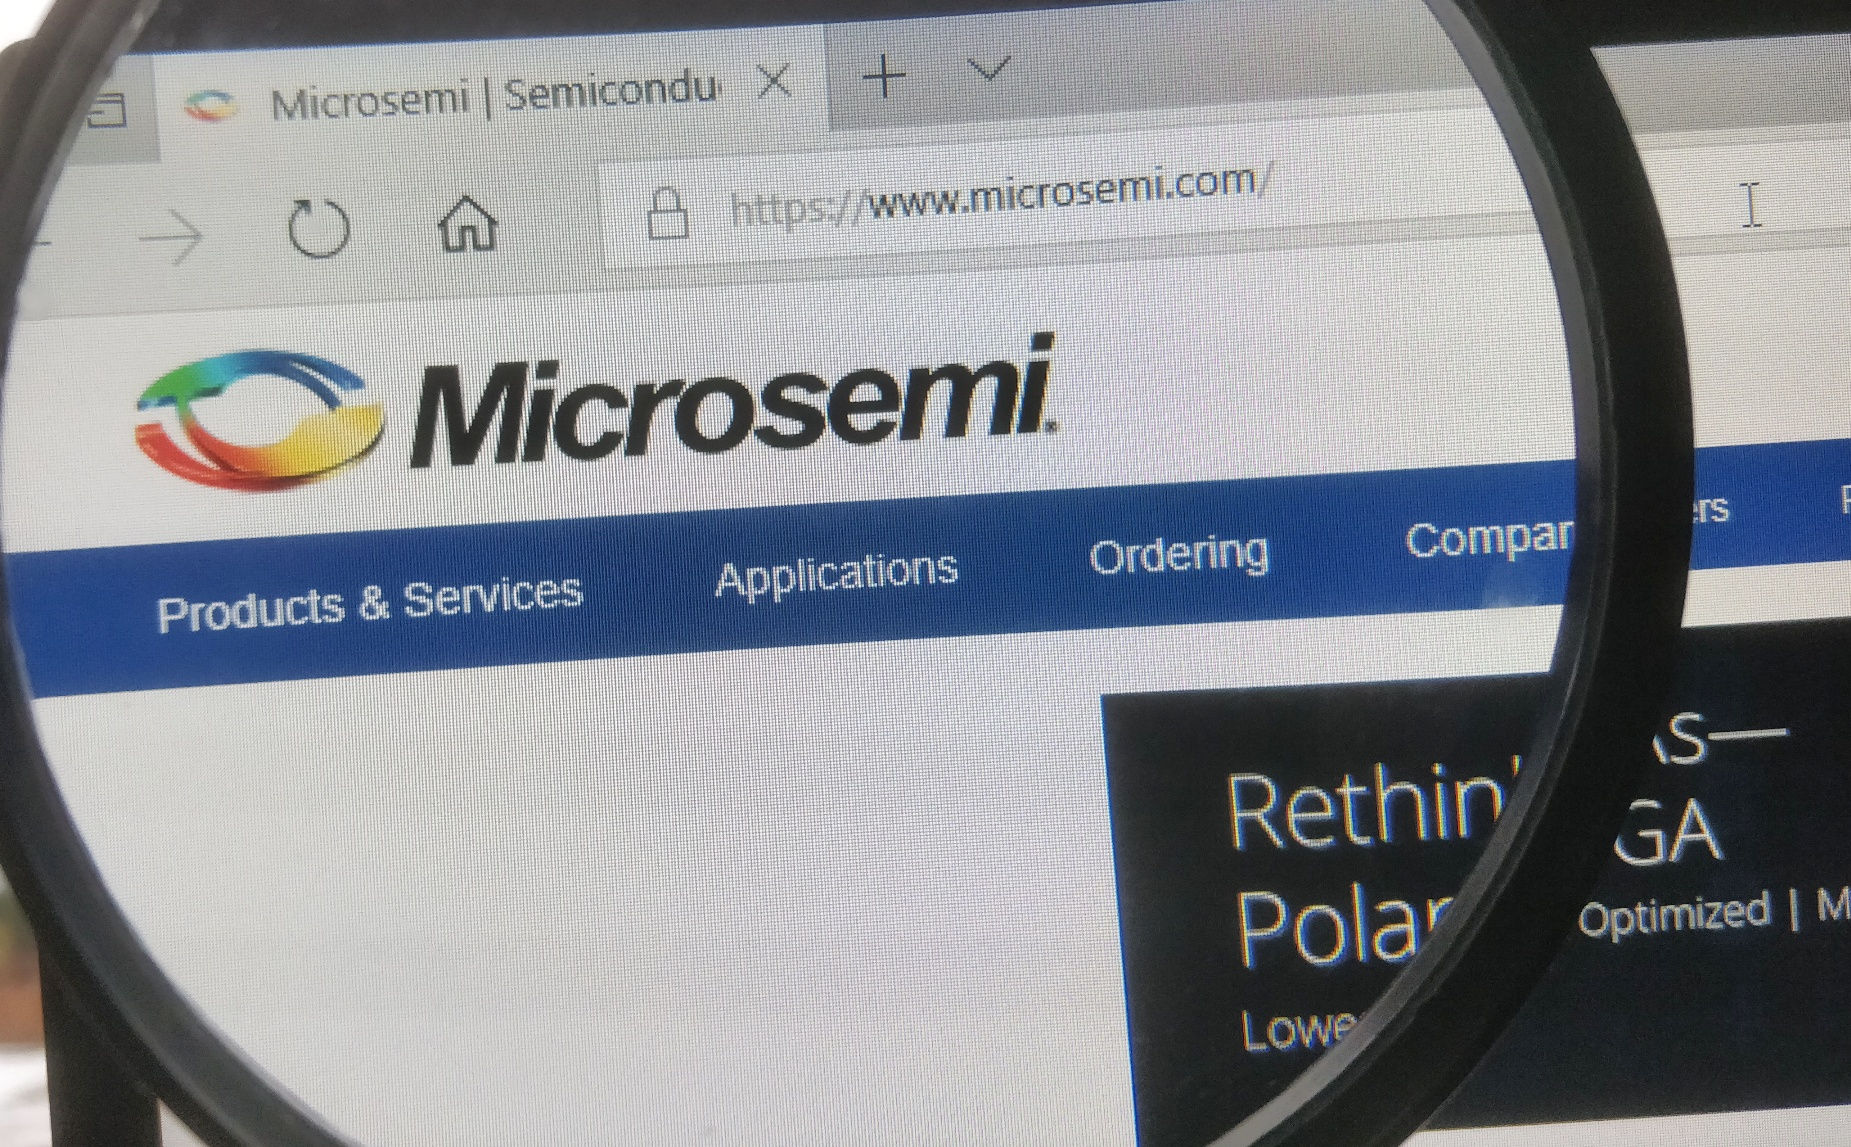 Microchip Technology to acquire Microsemi for about US$8.3 bln